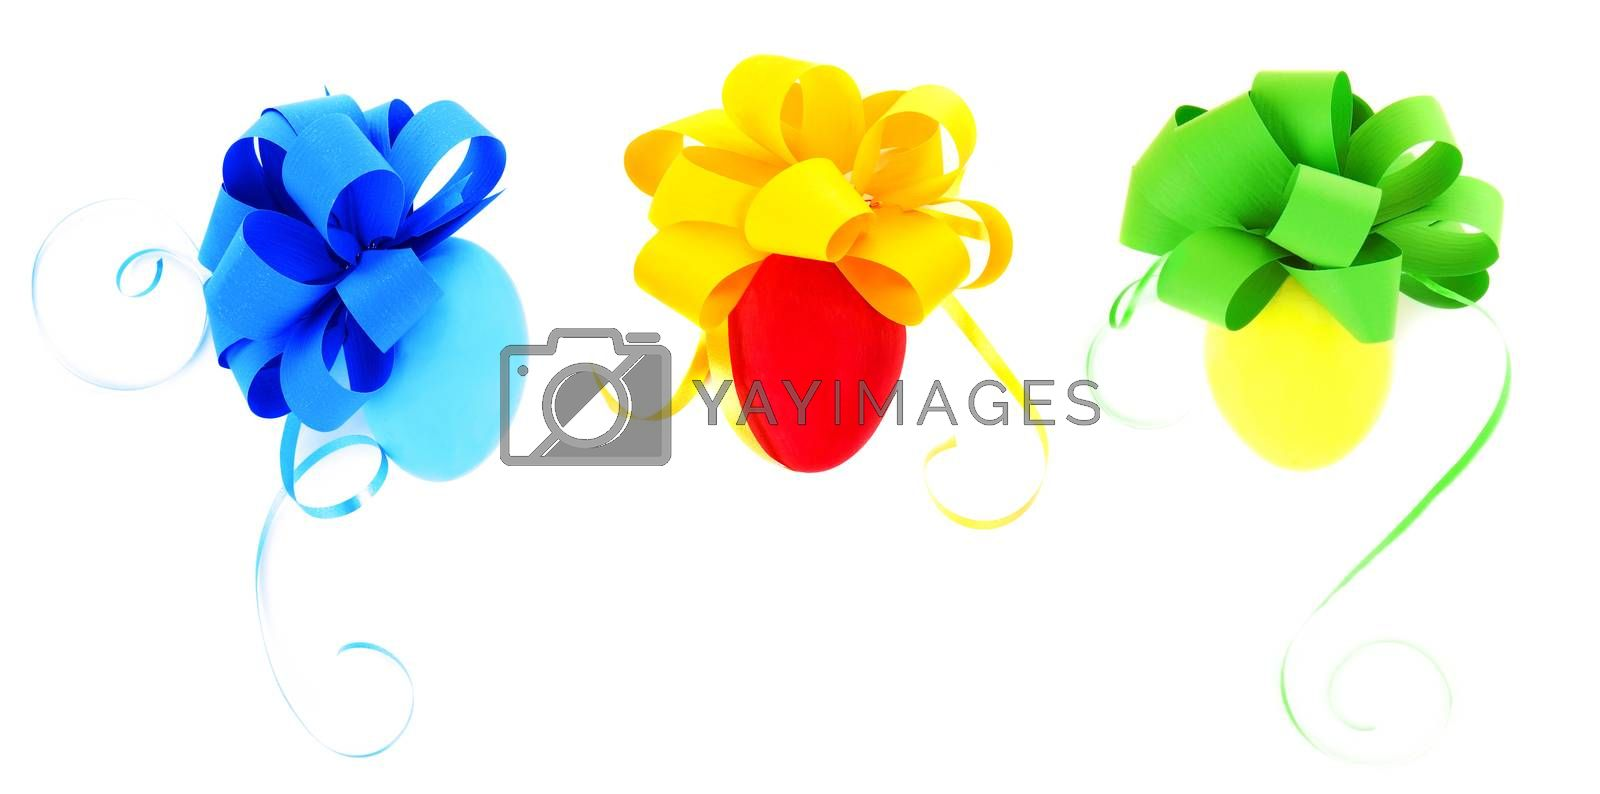 Three beautiful eggs coloring in different colors with ribbon bows isolated on white background, festive Easter collection